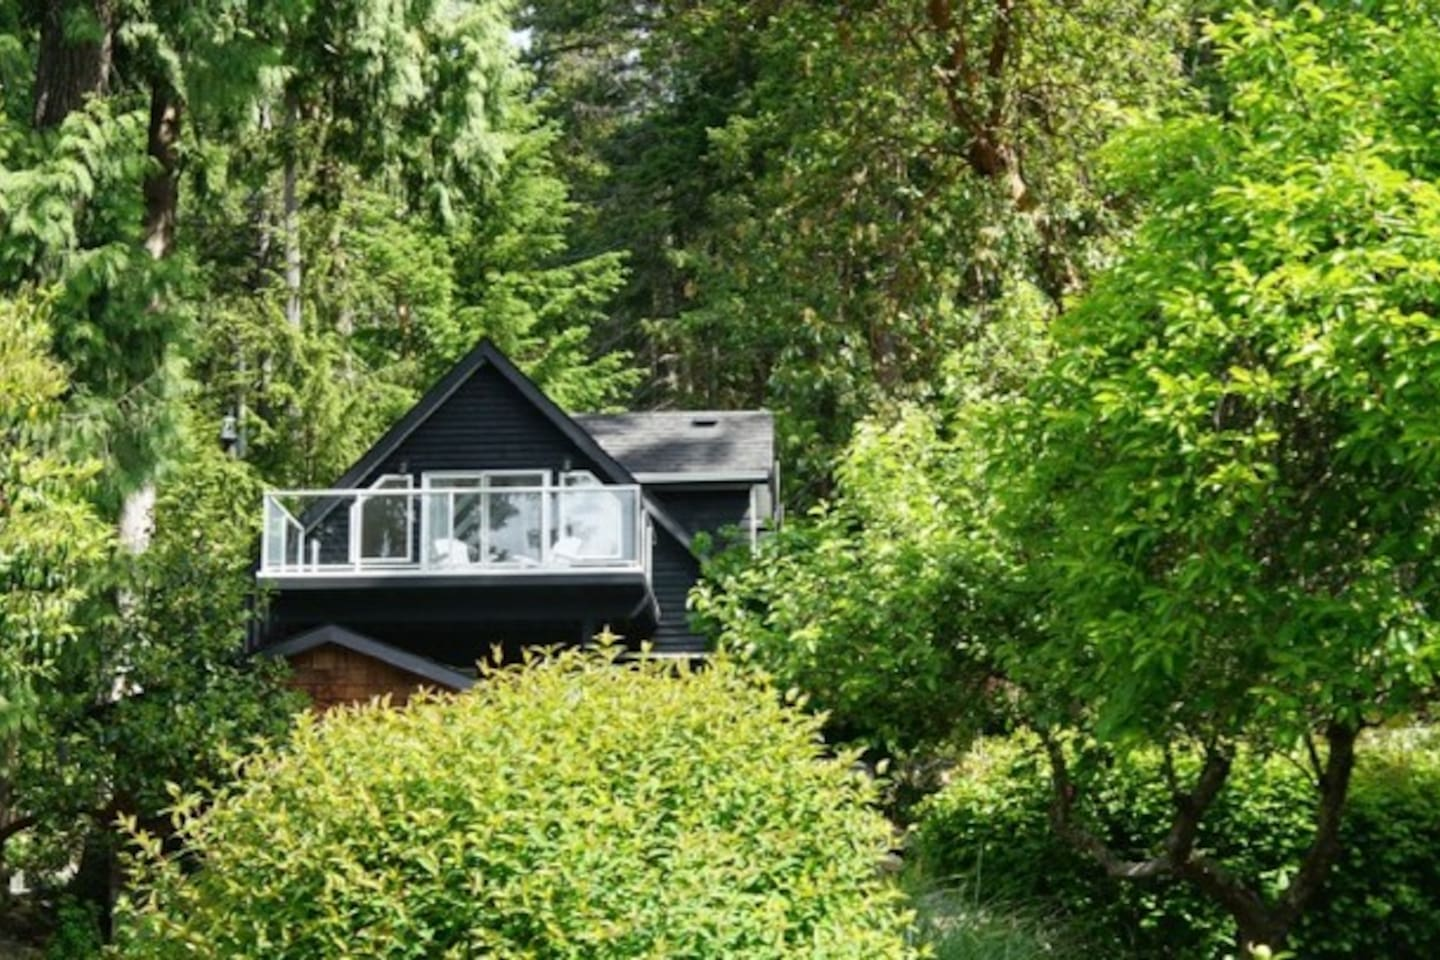 Nestled in the trees, access to private beach, close to Butchart Gardens, the Swartz Bay and Mill Bay ferries, and Victoria International Airport.